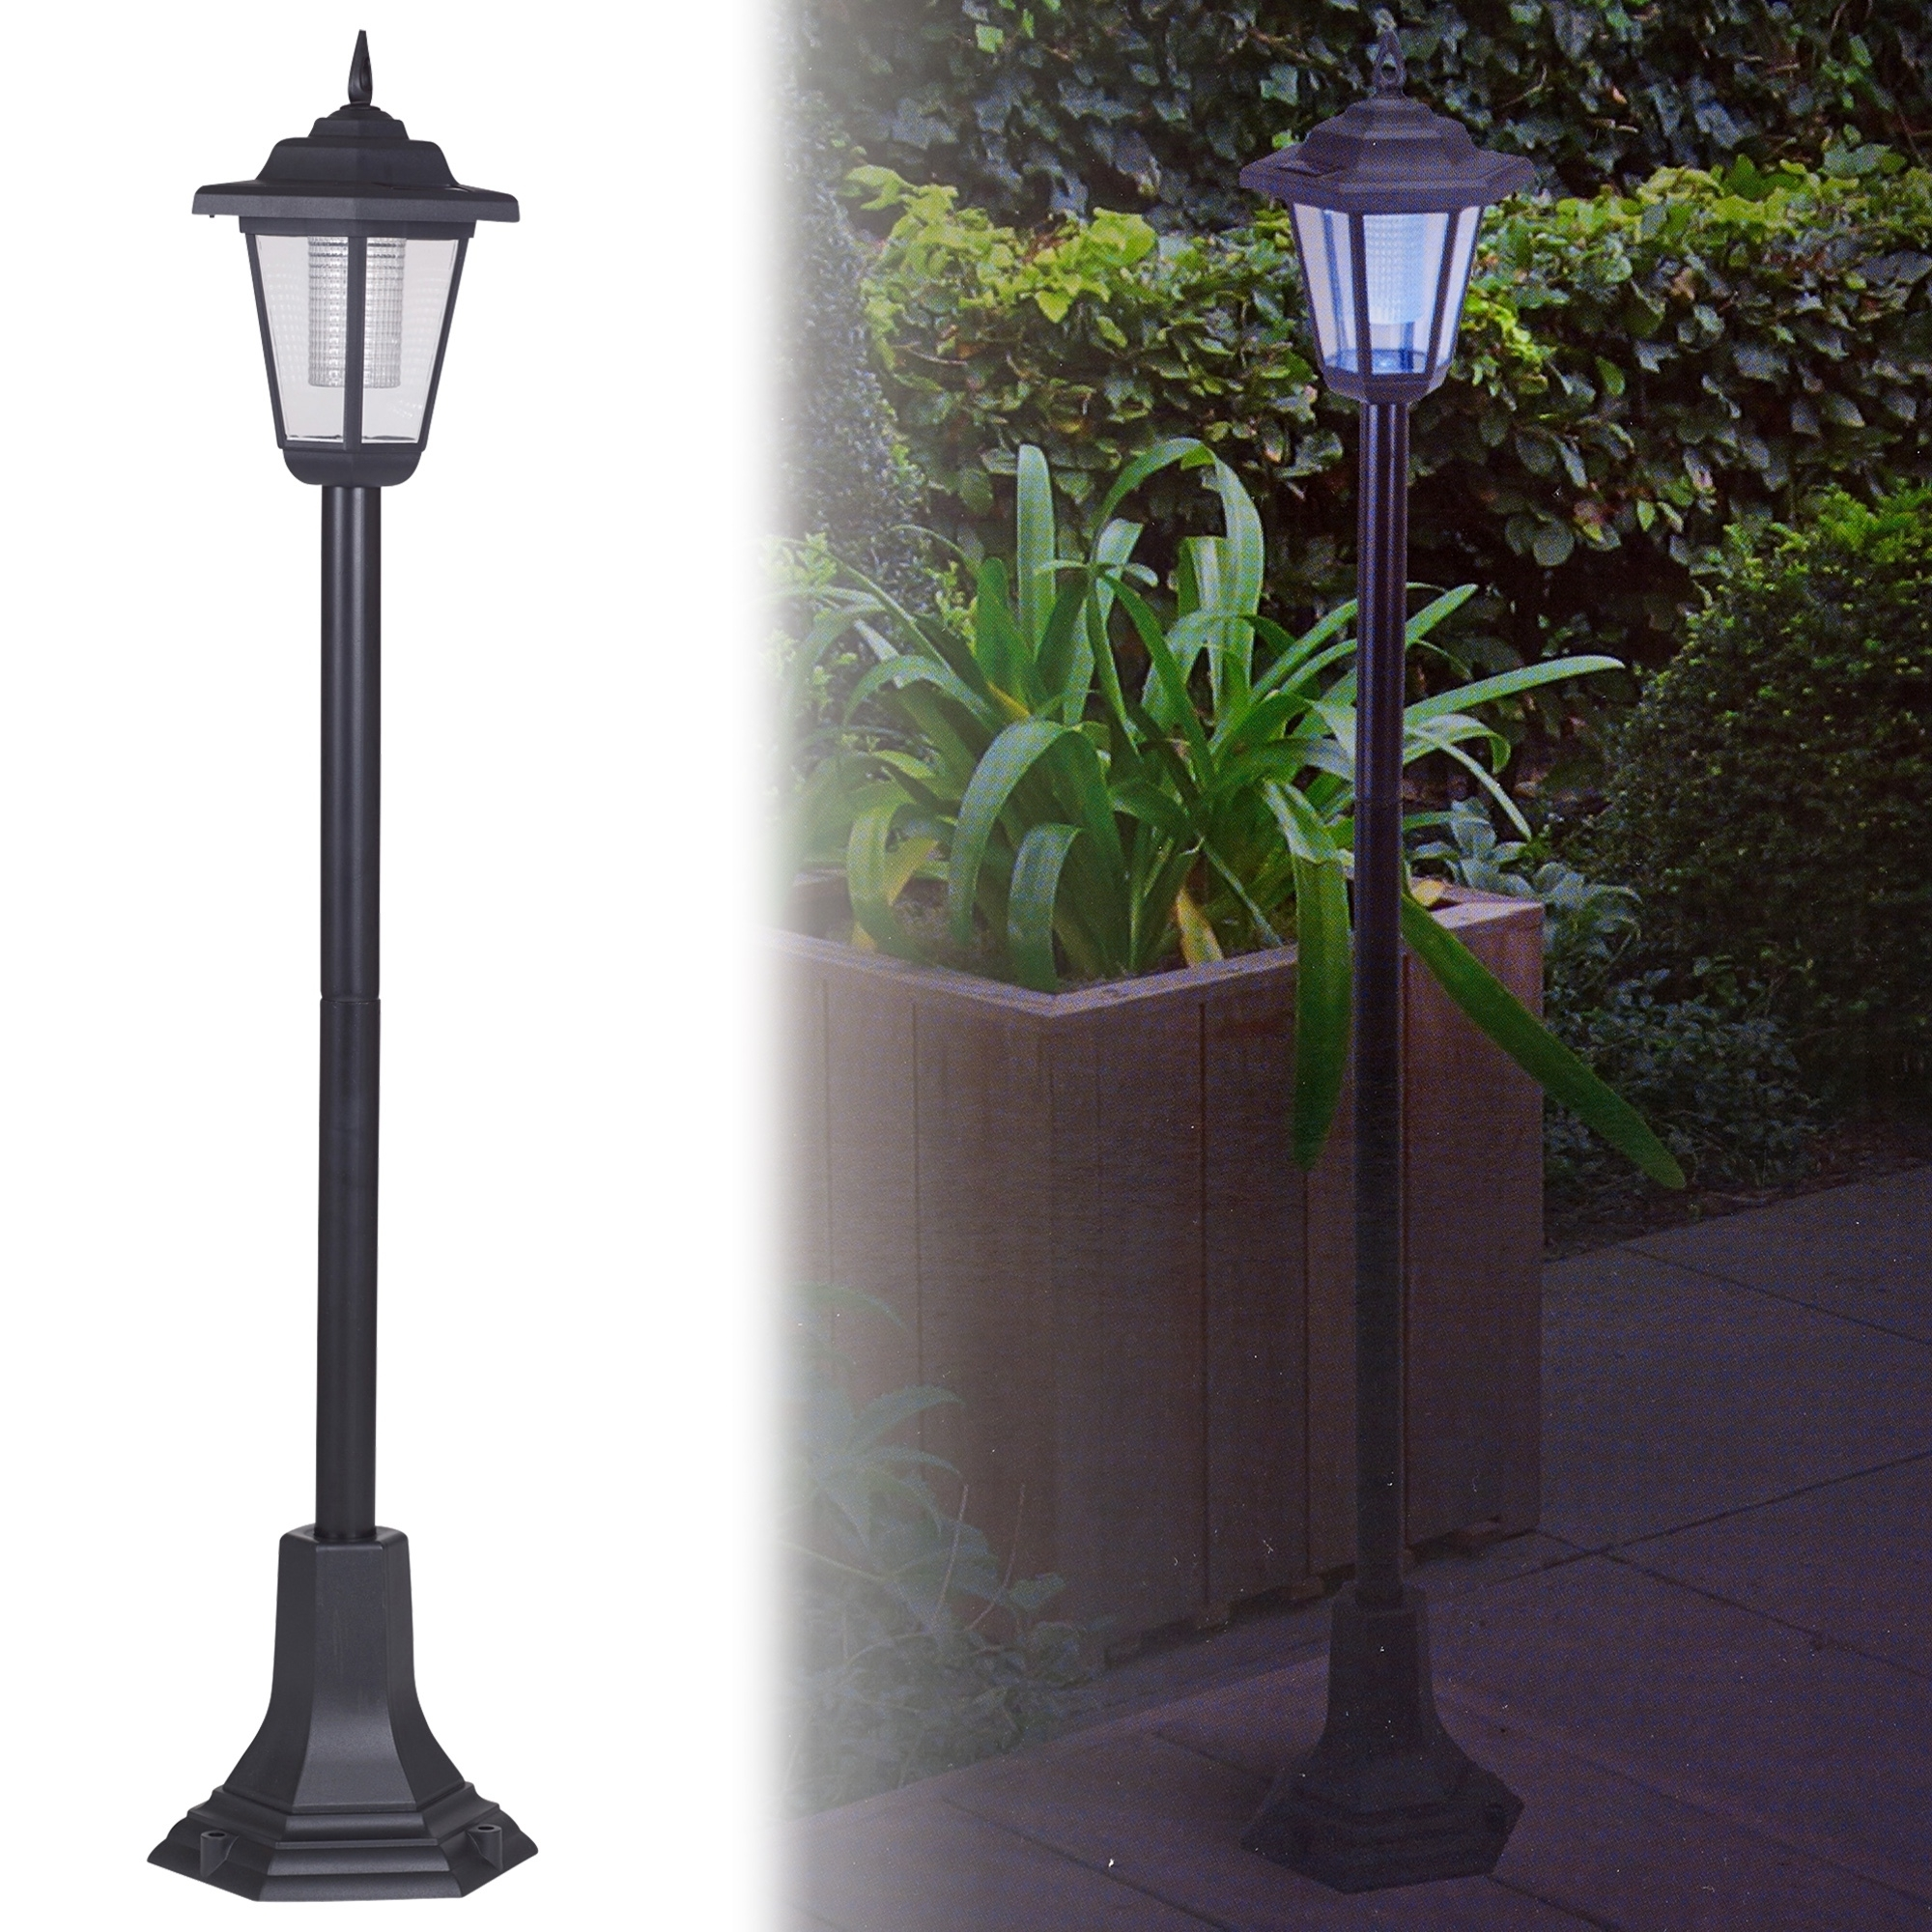 Recent Solar Powered Garden Lights Lantern Lamp Black Led Pathway Driveway Intended For Outdoor Ground Lanterns (Gallery 10 of 20)